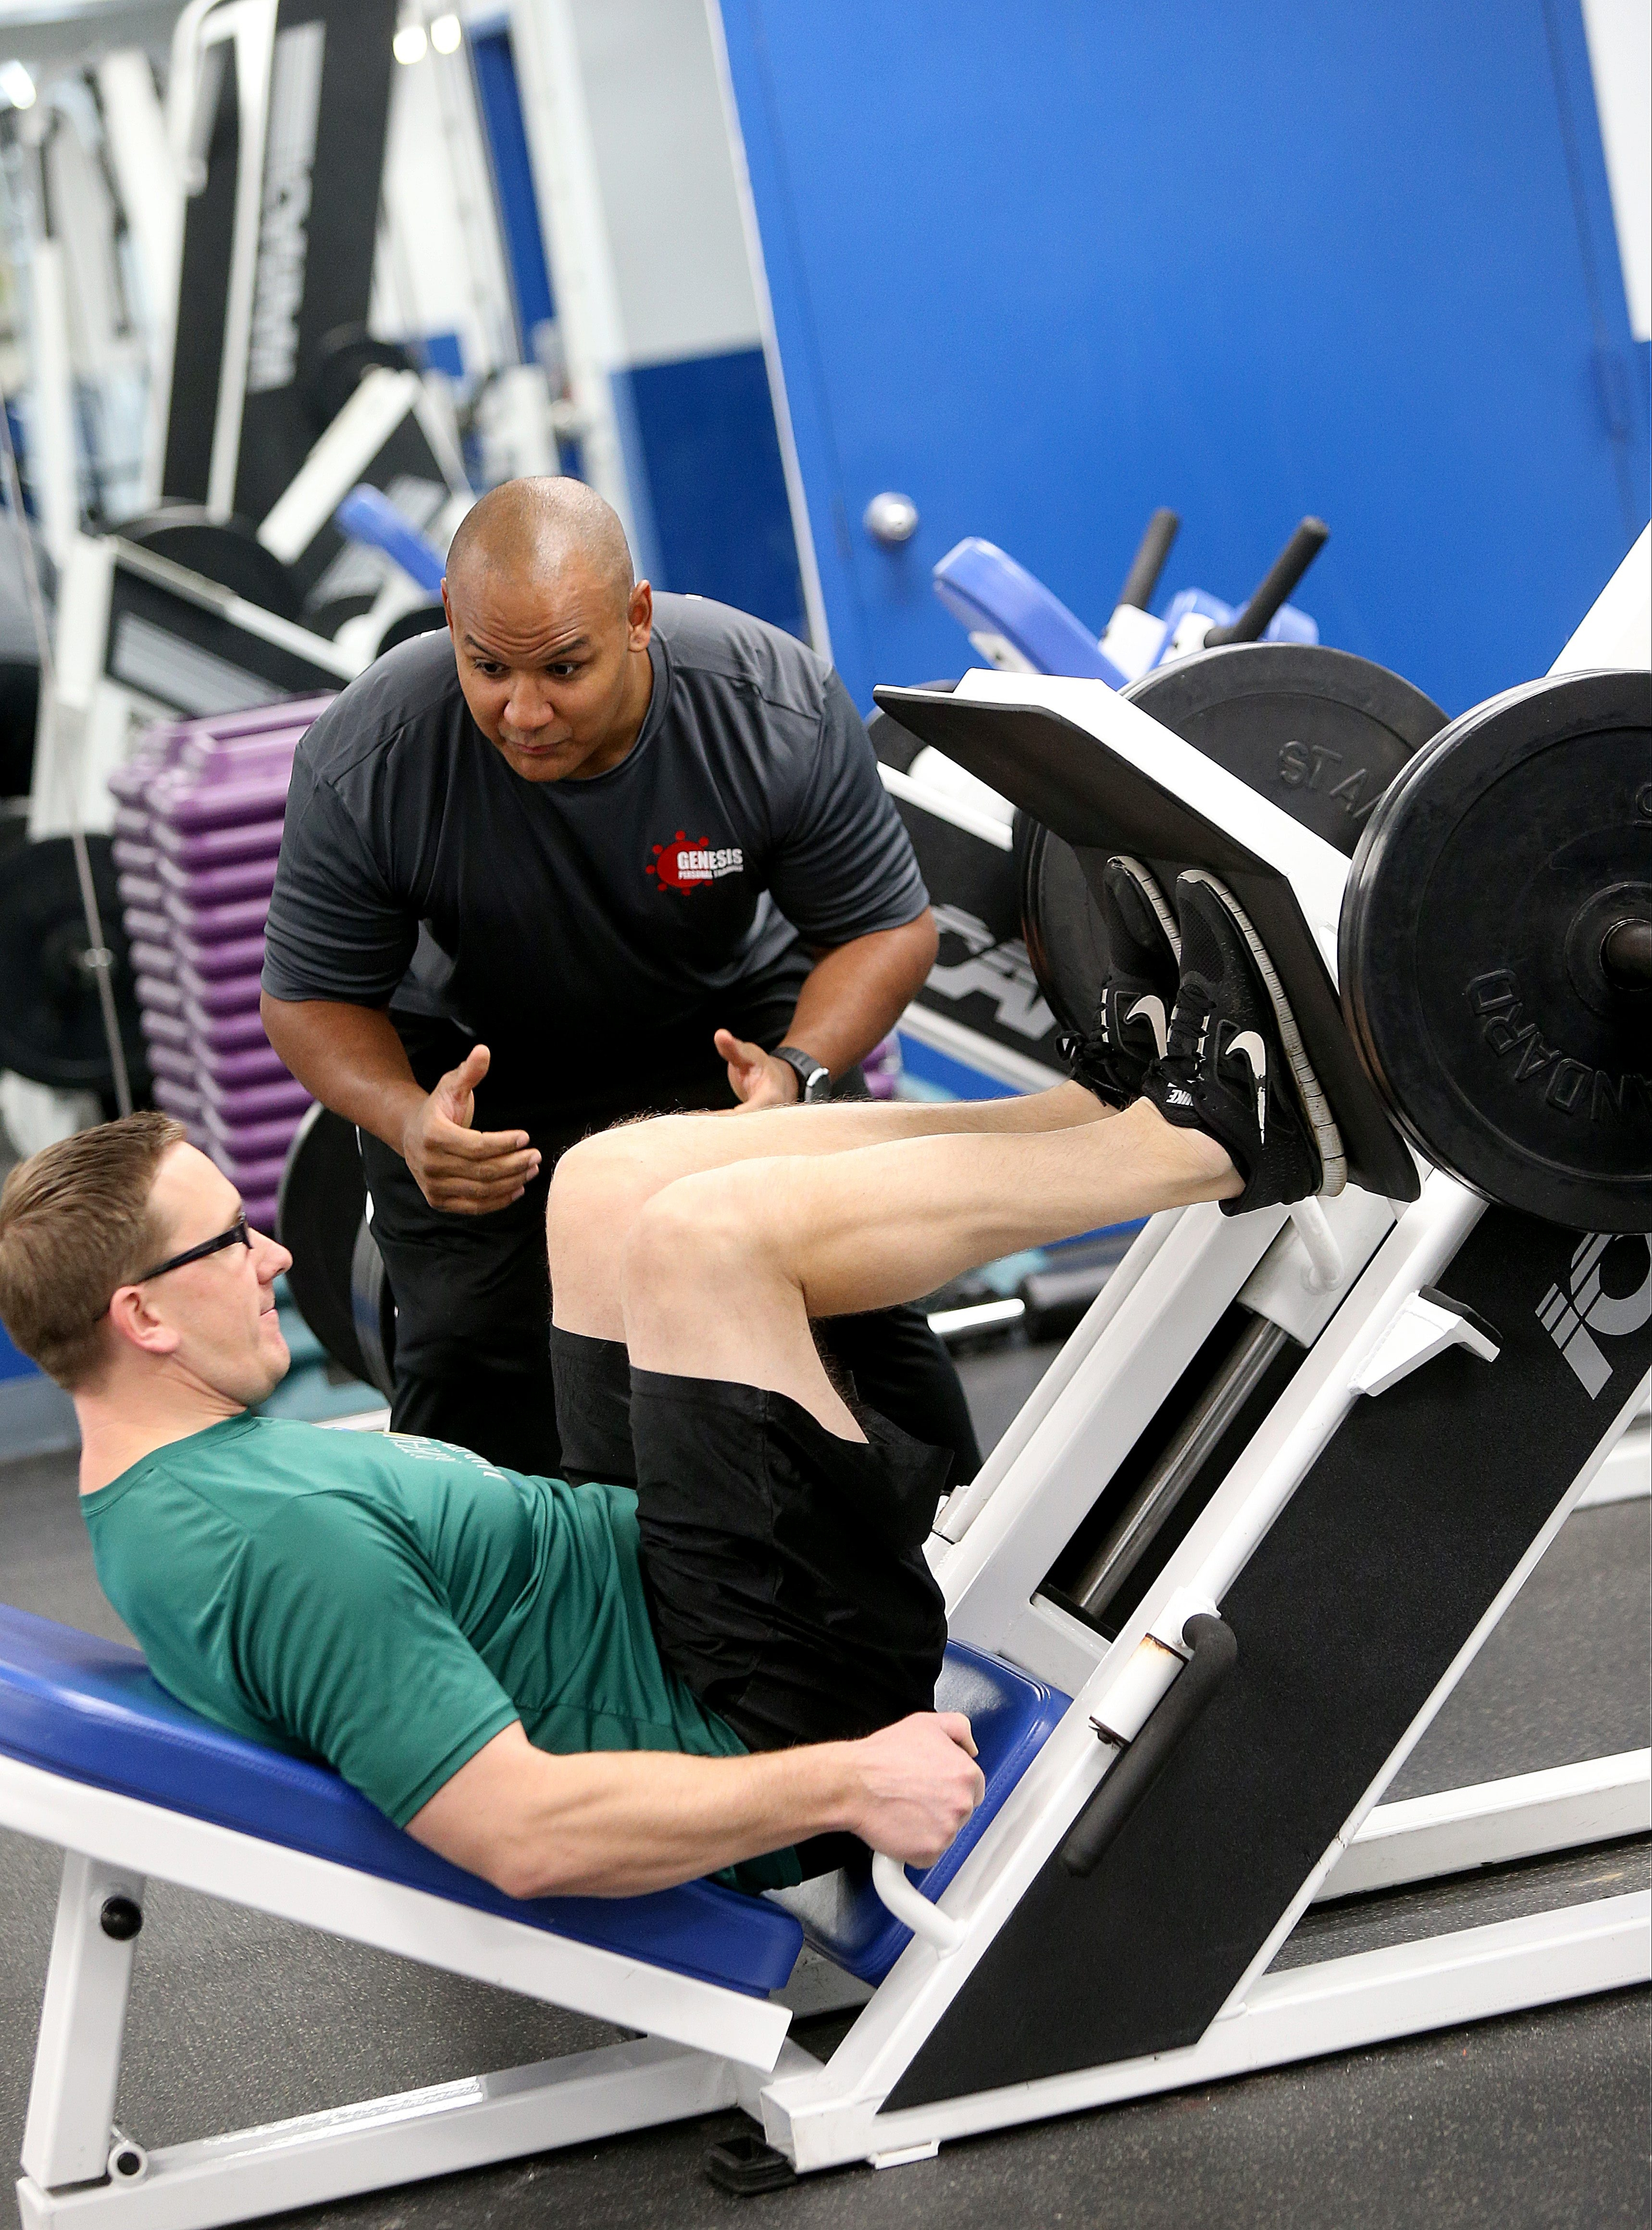 Personal trainer Bryon Sperduti, top, puts Joel Drier through the paces at Genesis Personal Training in West Seneca.